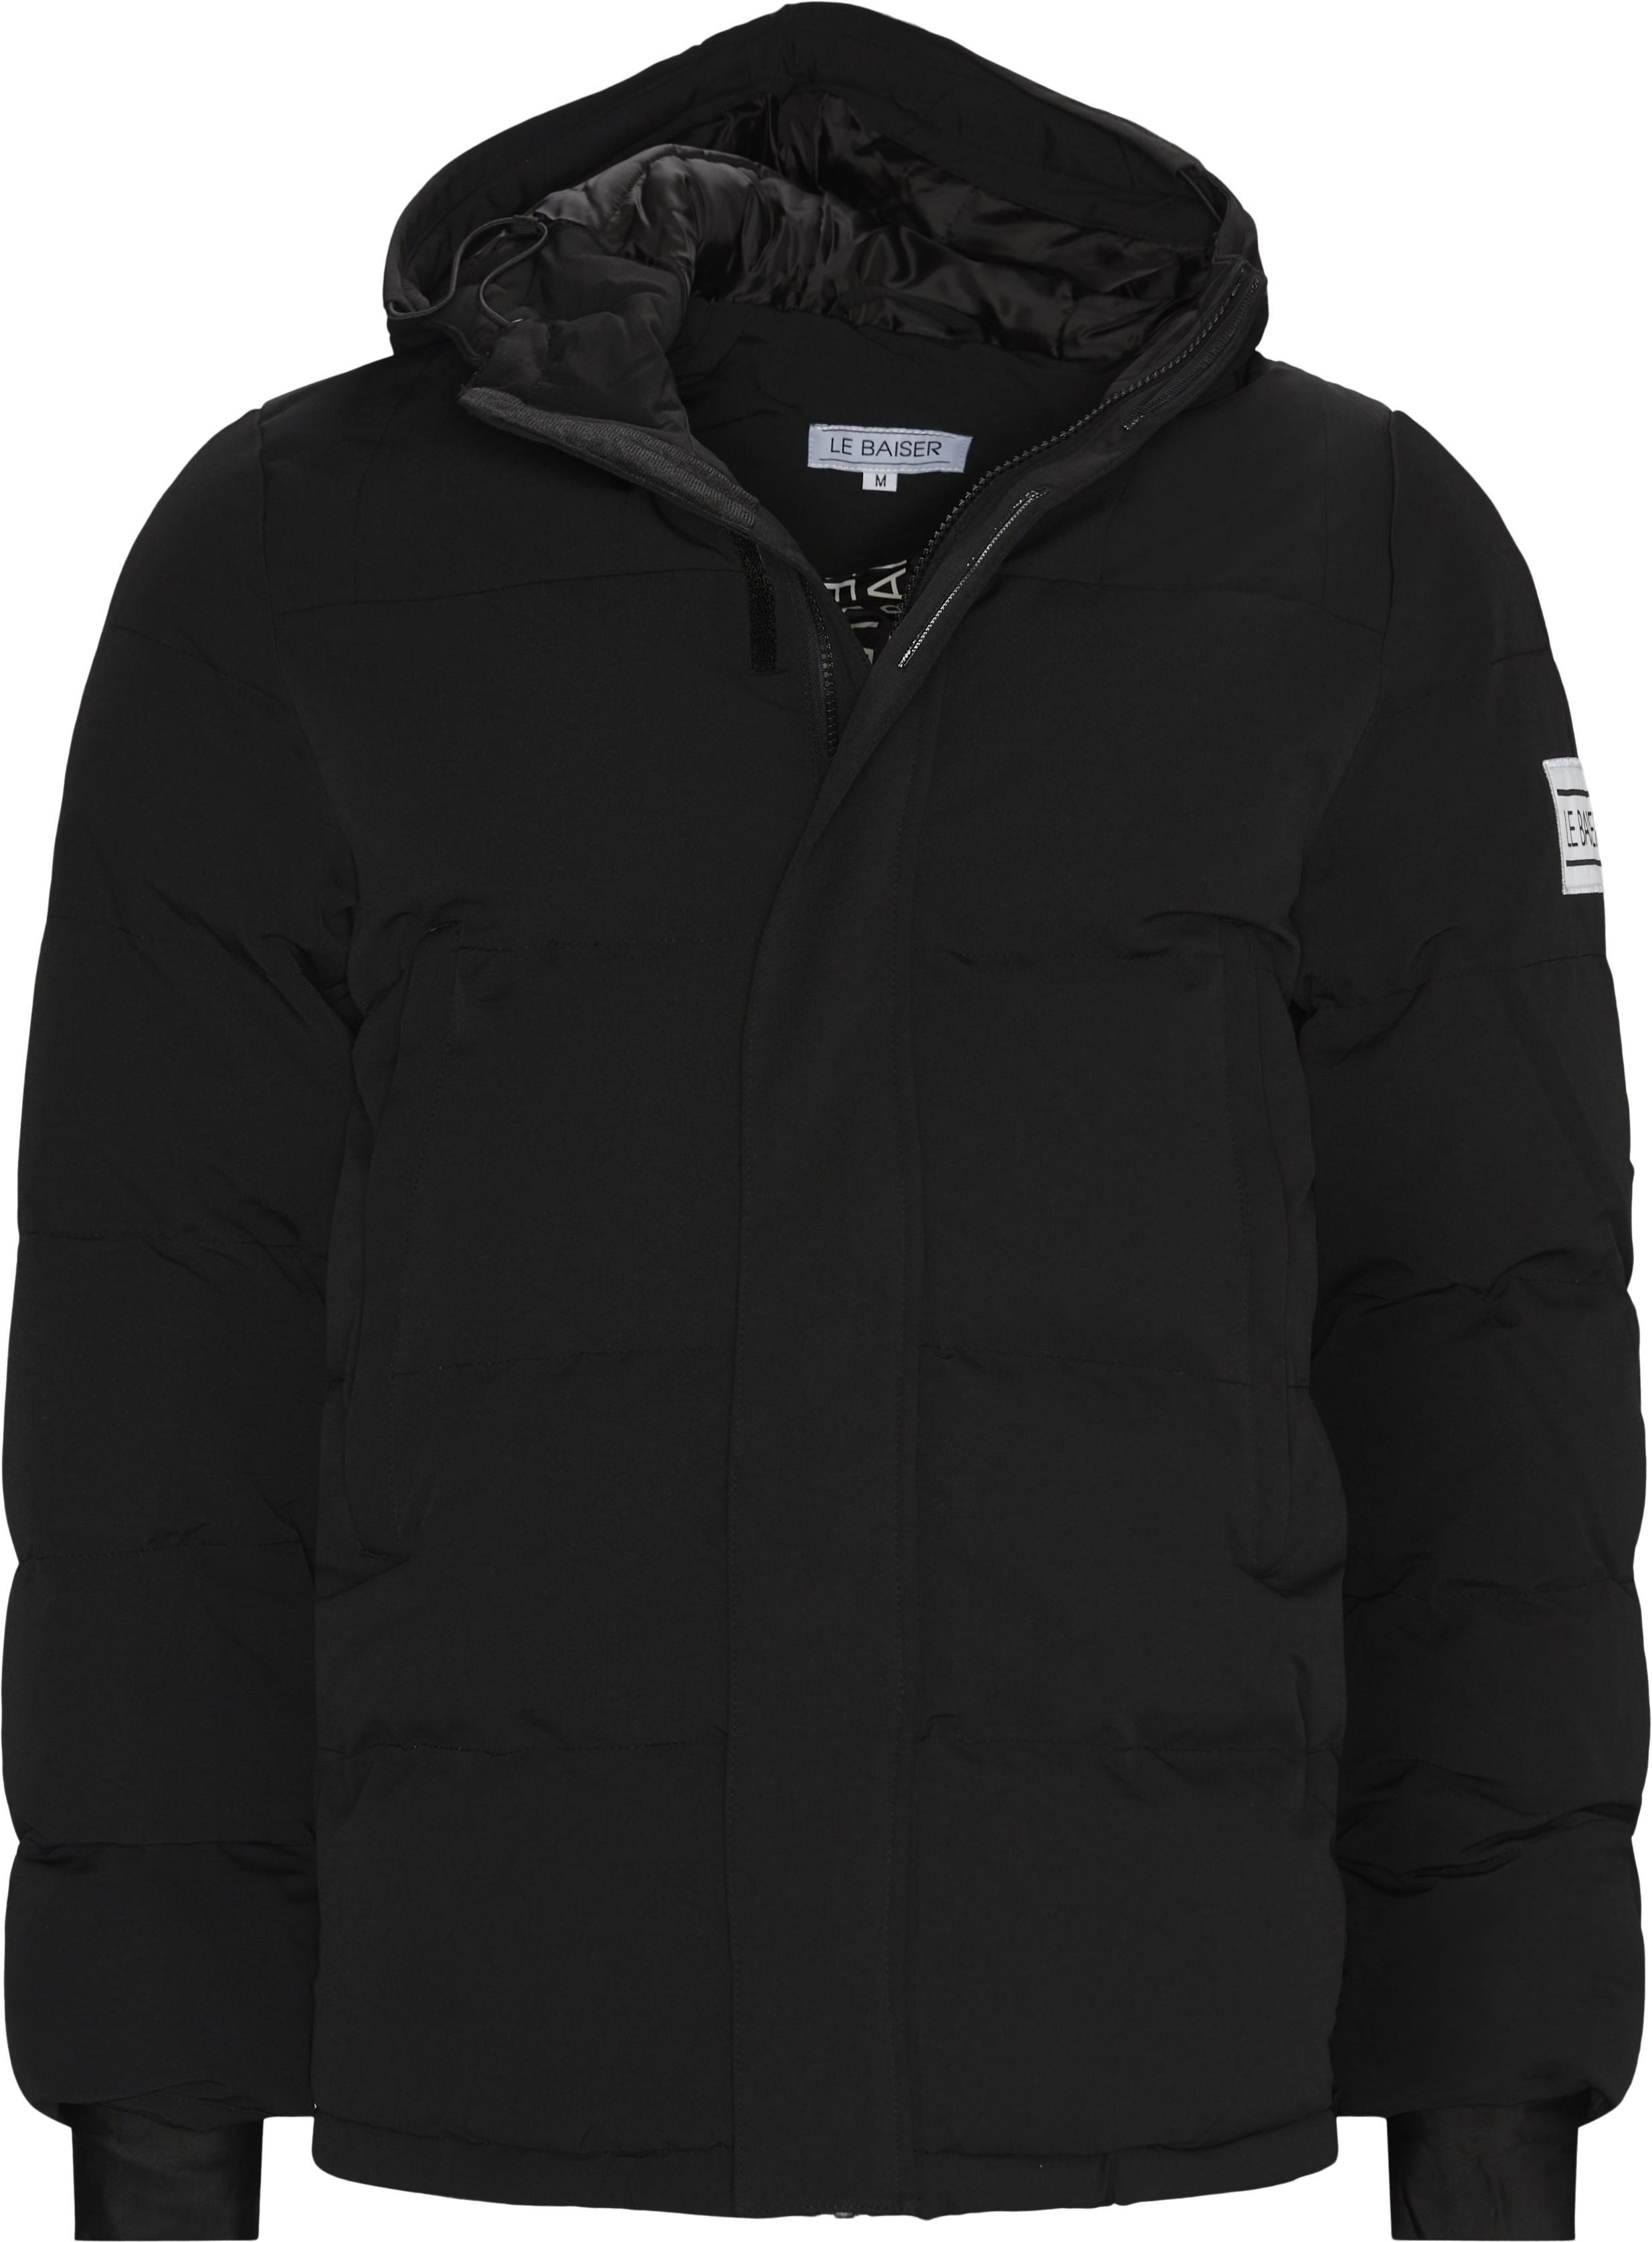 Michigan Jacket - Jackets - Regular - Black